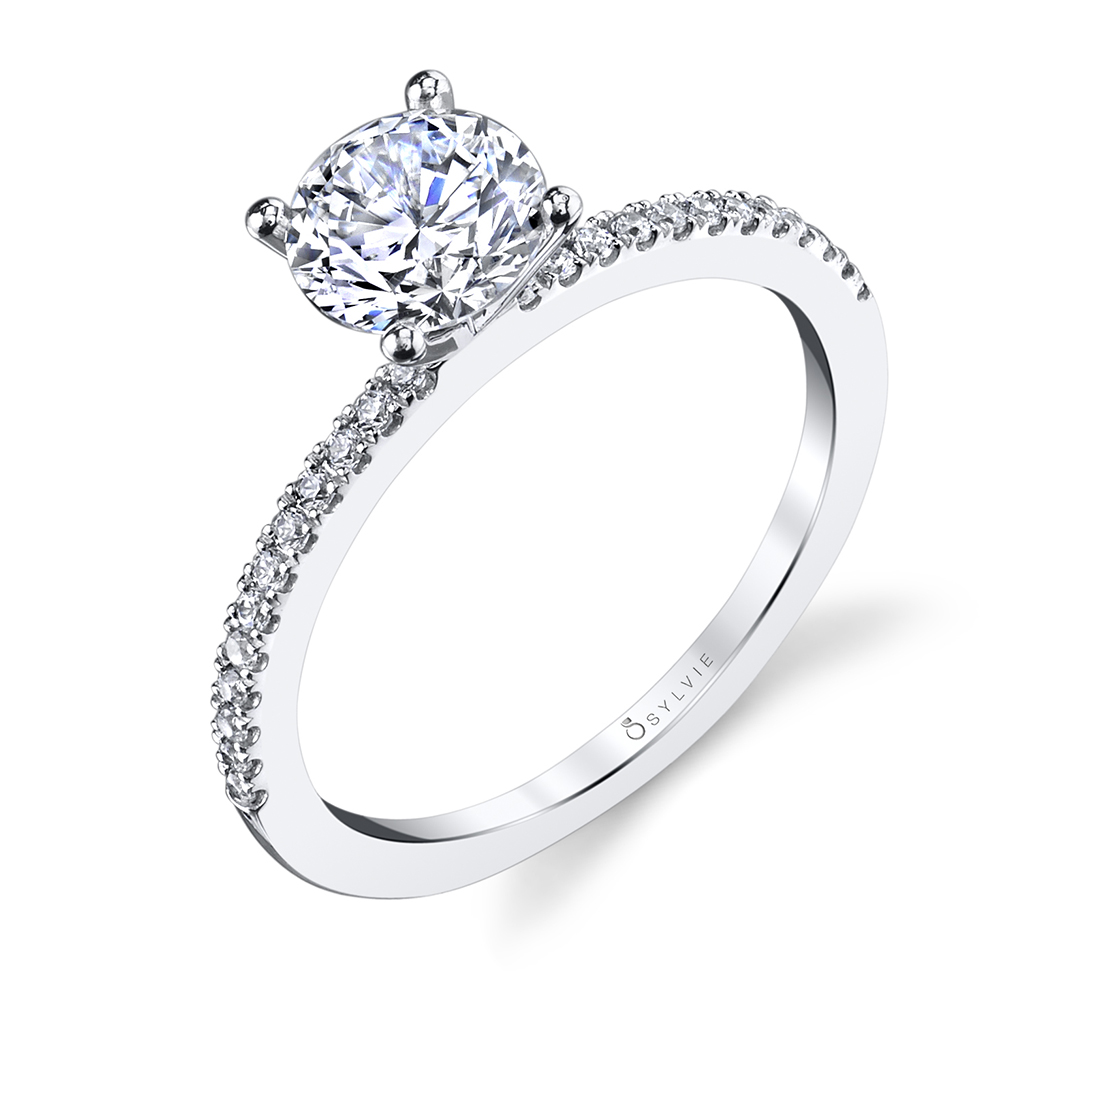 Pave Engagement Ring in White Gold - Carlotta